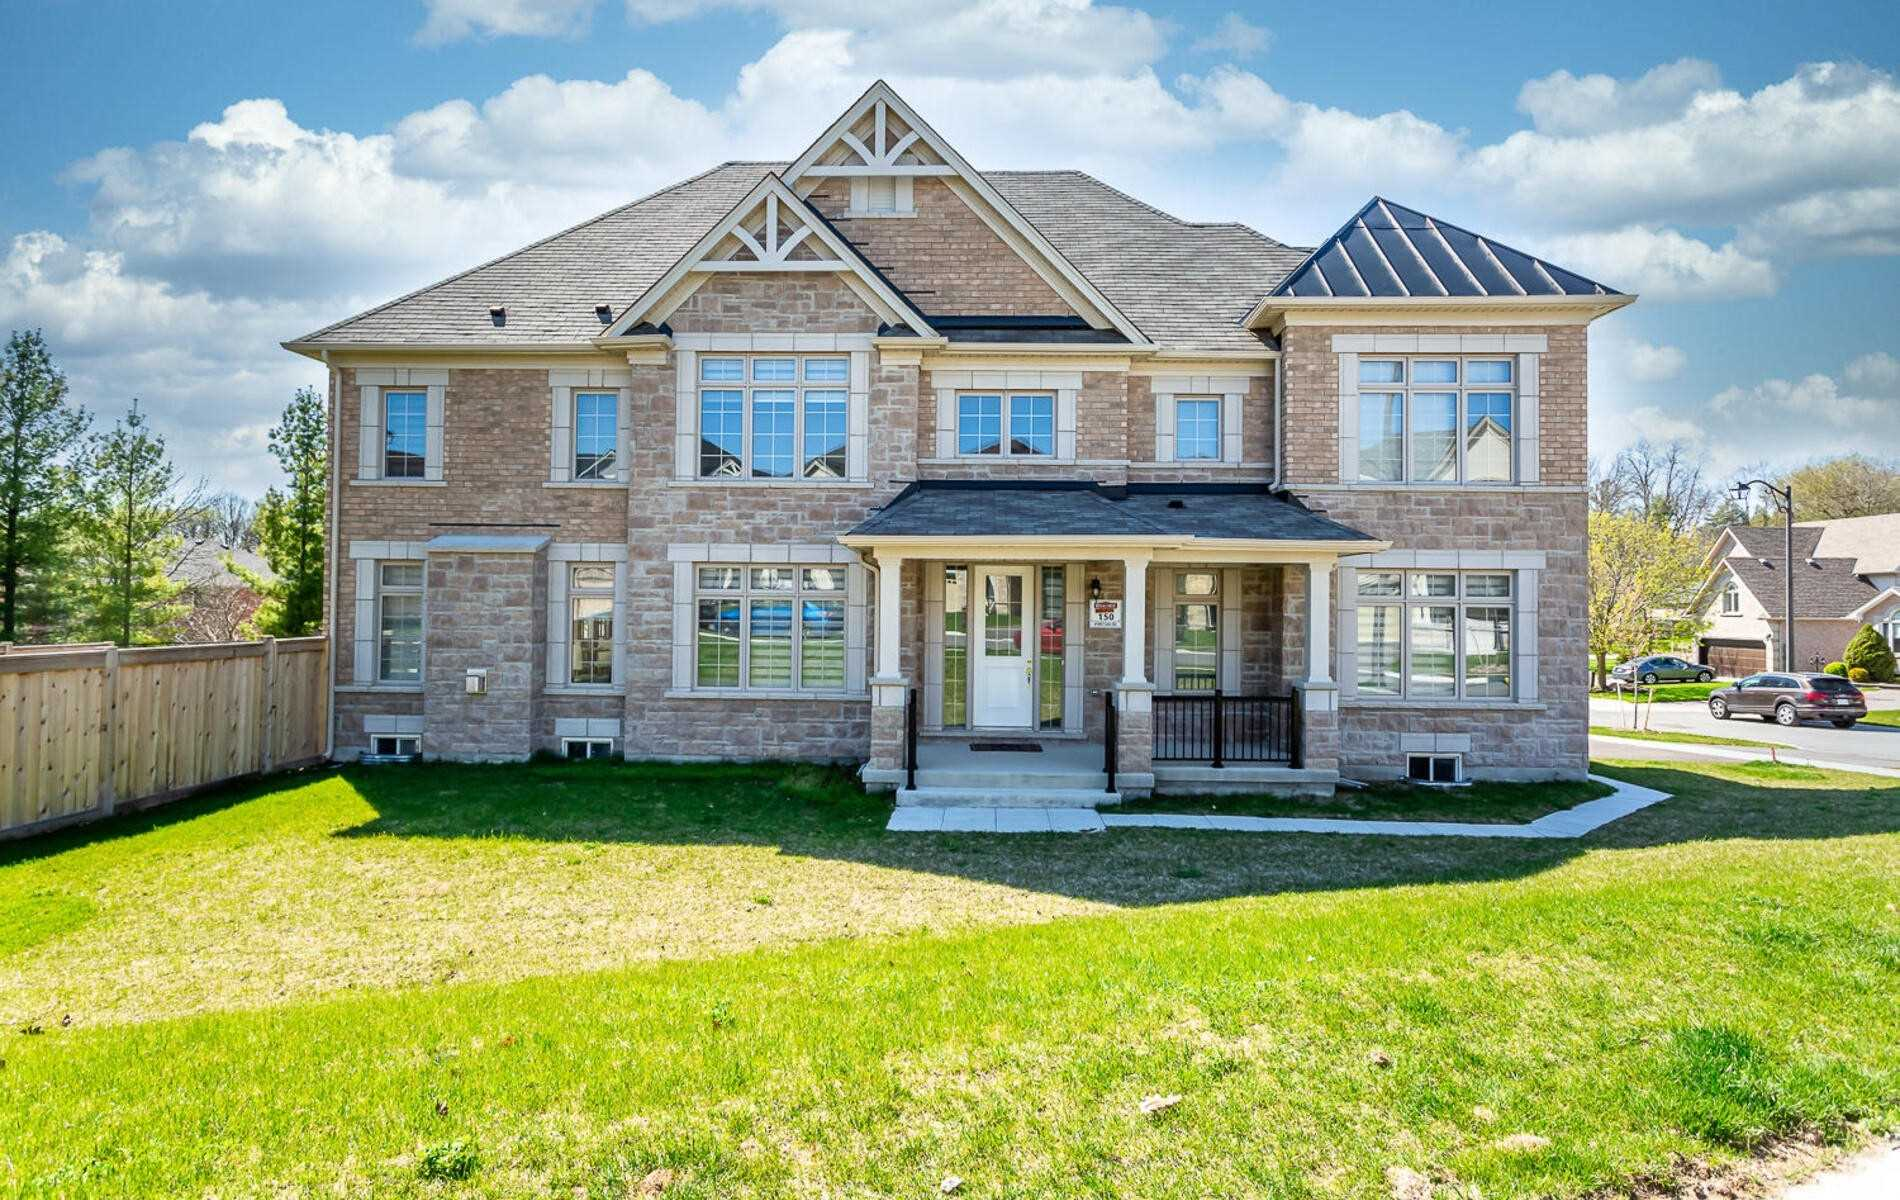 For Sale: 8 Forest Edge Crescent, East Gwillimbury, ON   4 Bed, 4 Bath House for $1248000.00. See 29 photos!